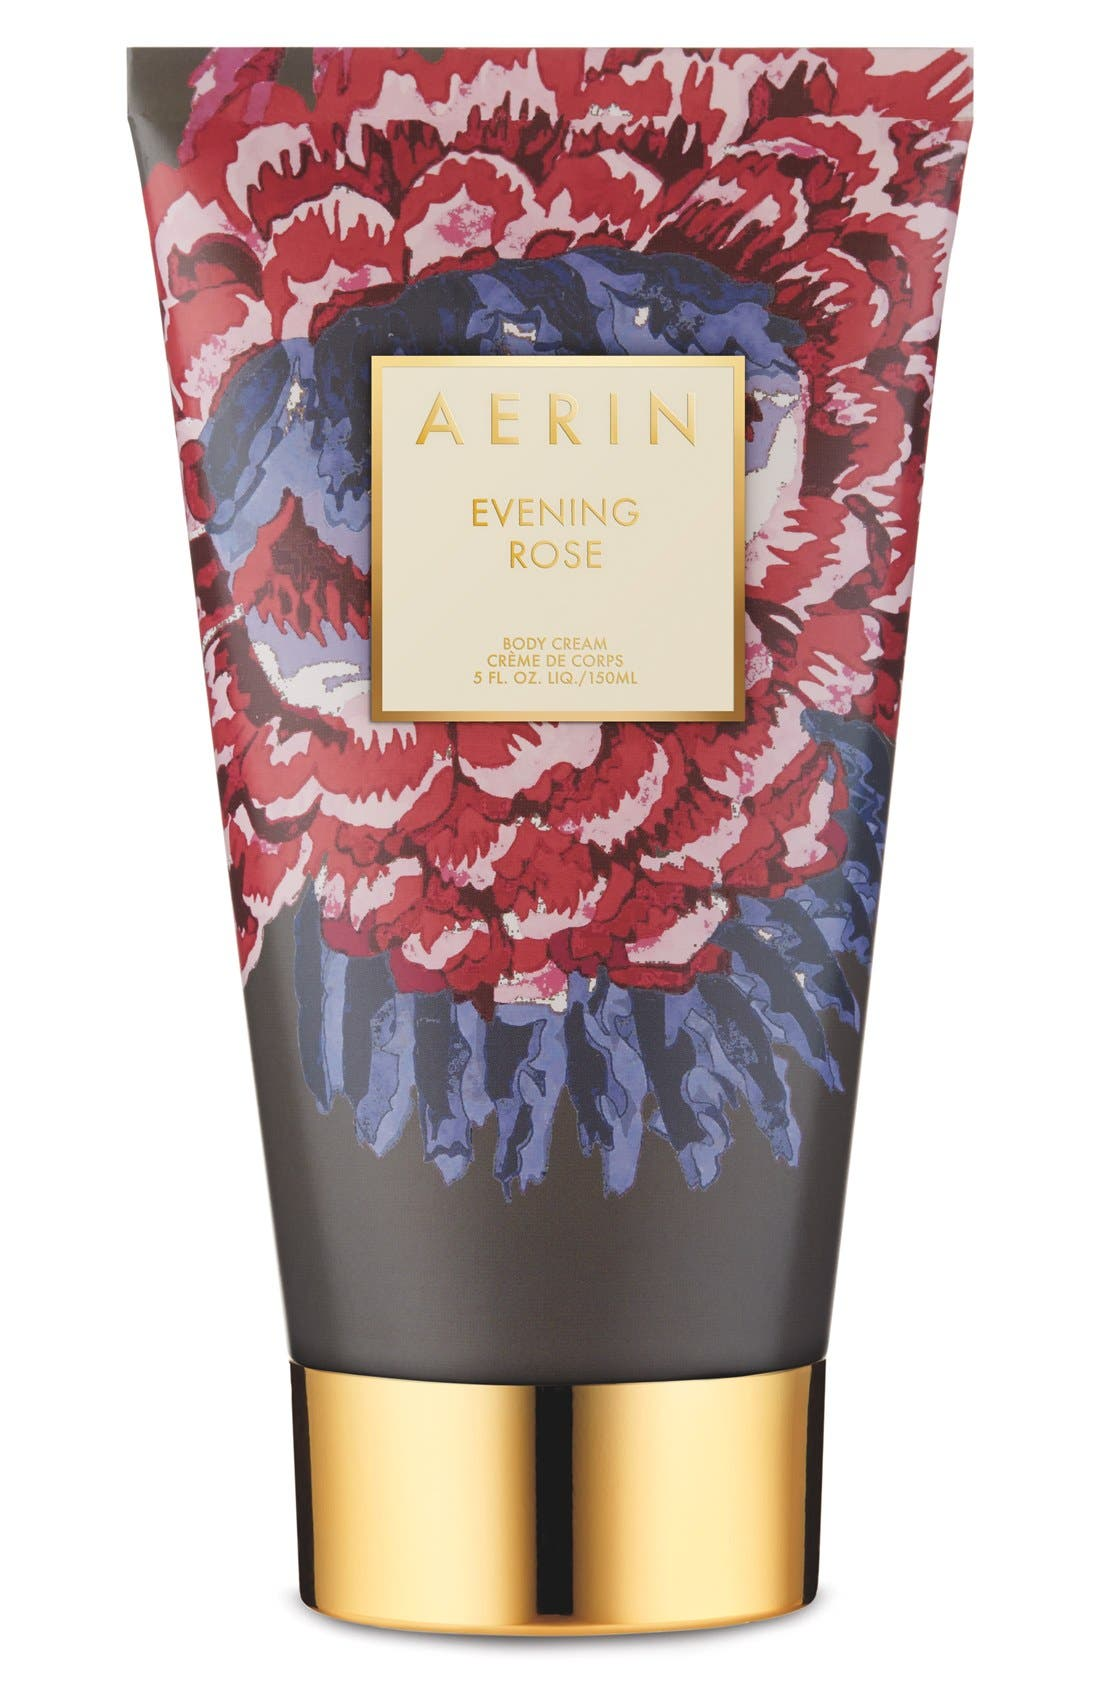 AERIN Beauty Evening Rose Body Cream